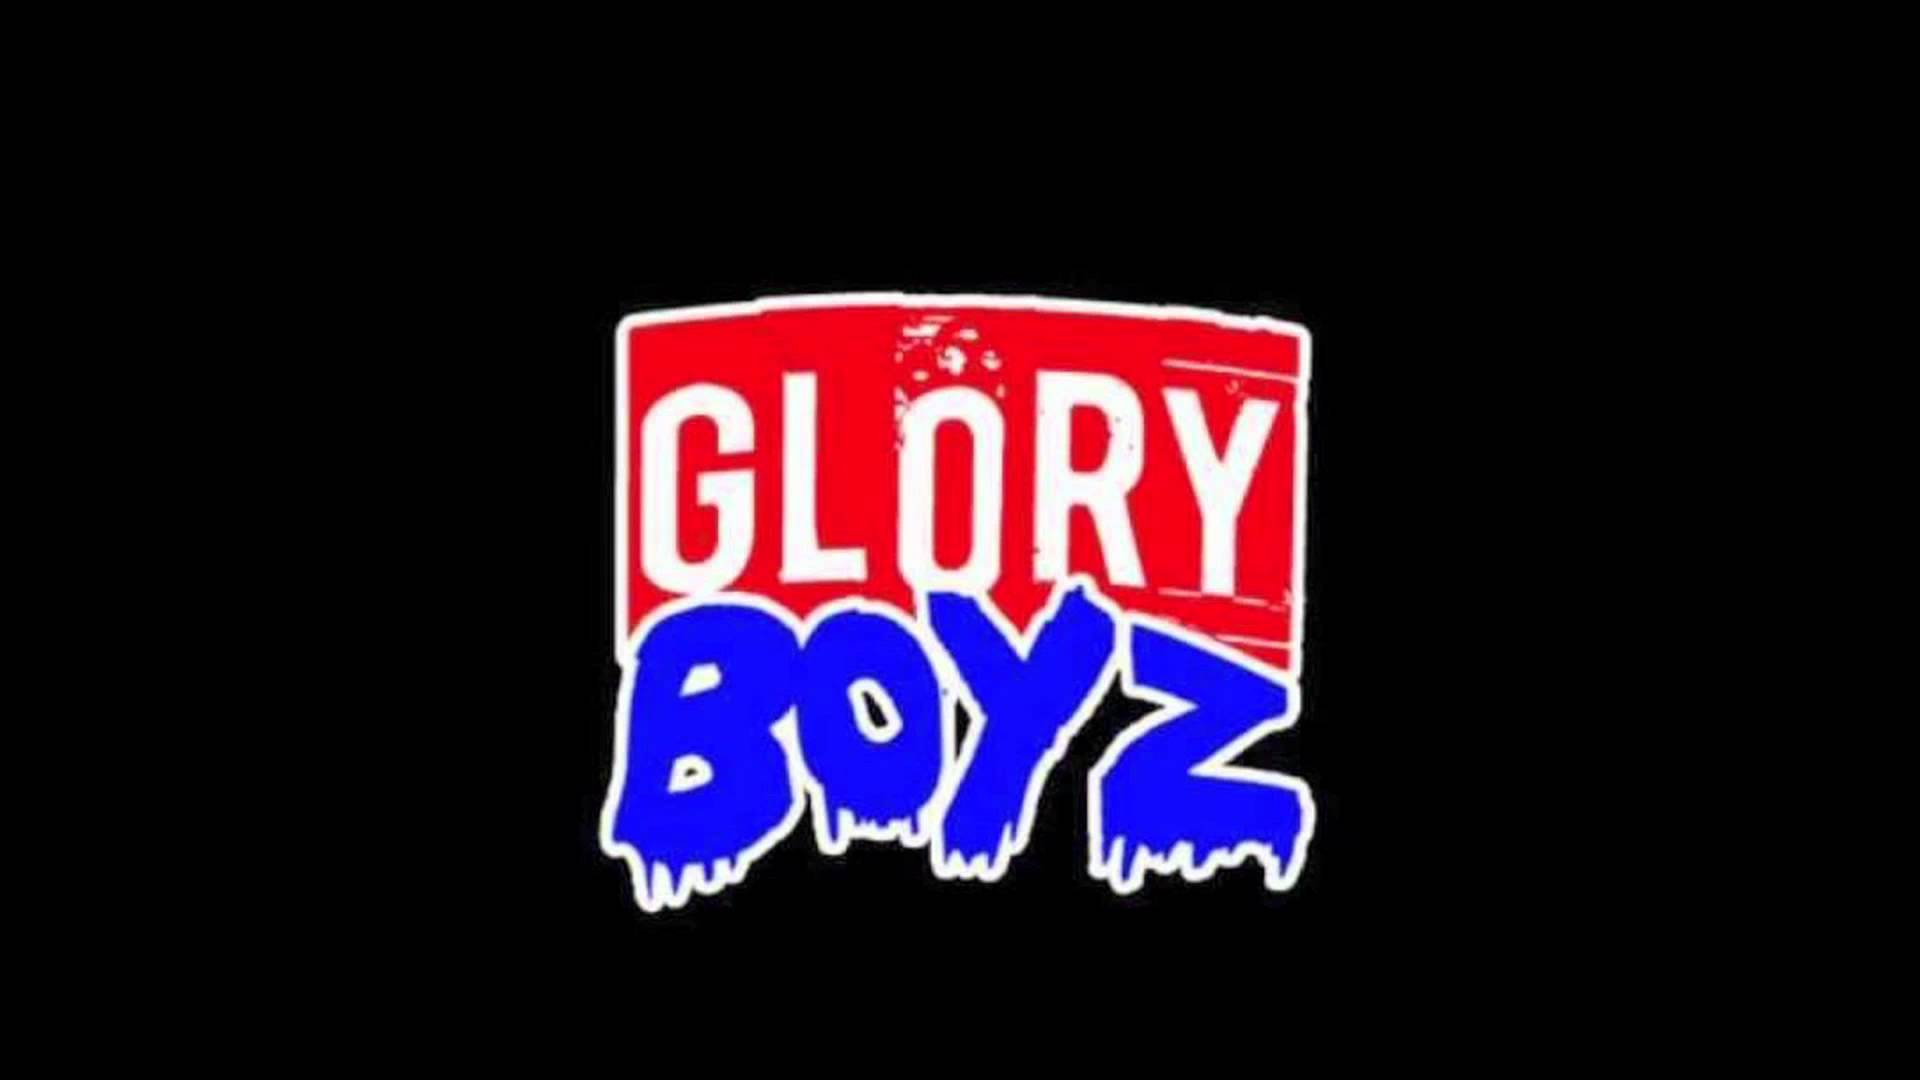 Glory Boyz Wallpaper Images Pictures   Becuo 1920x1080